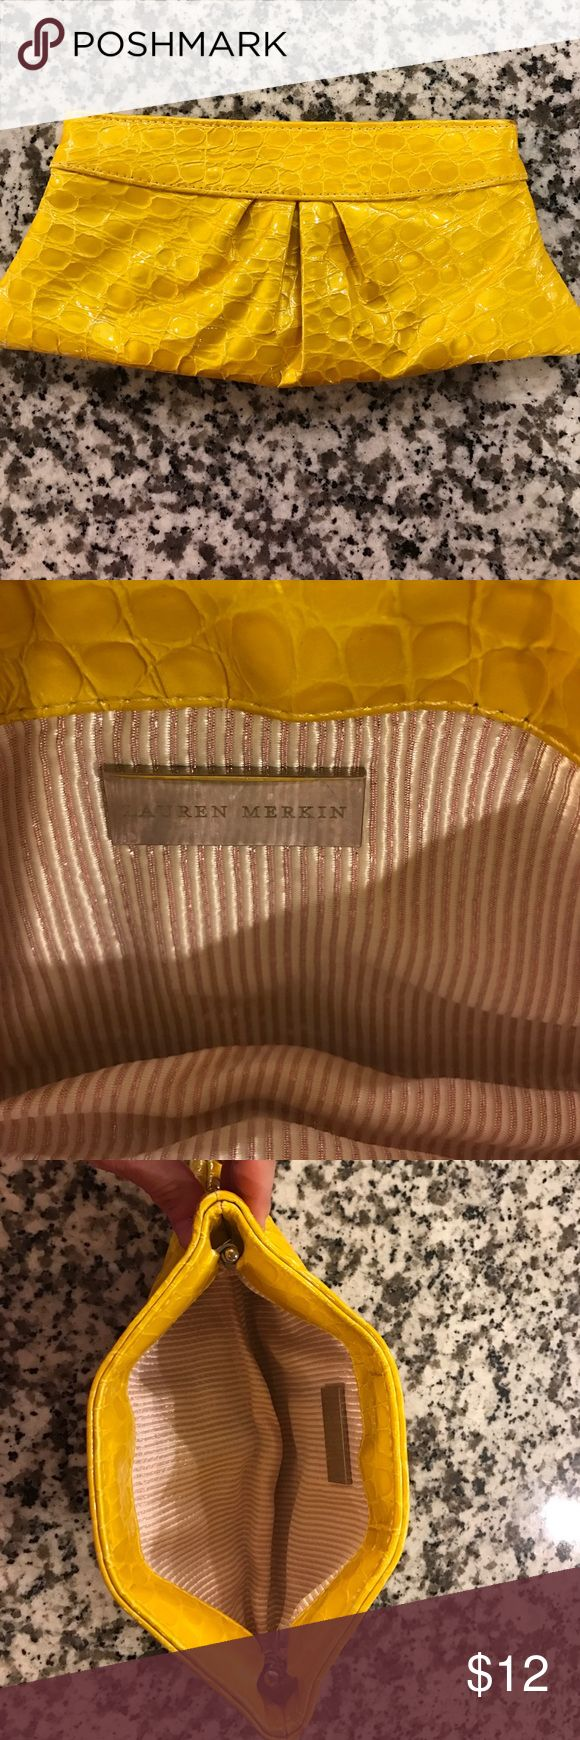 Lauren Merkin yellow clutch Awesome yellow Lauren Merkin clutch. In great condition except a few scuffs on front. See pictures. Smoke and pet free home Lauren Merkin Bags Clutches & Wristlets